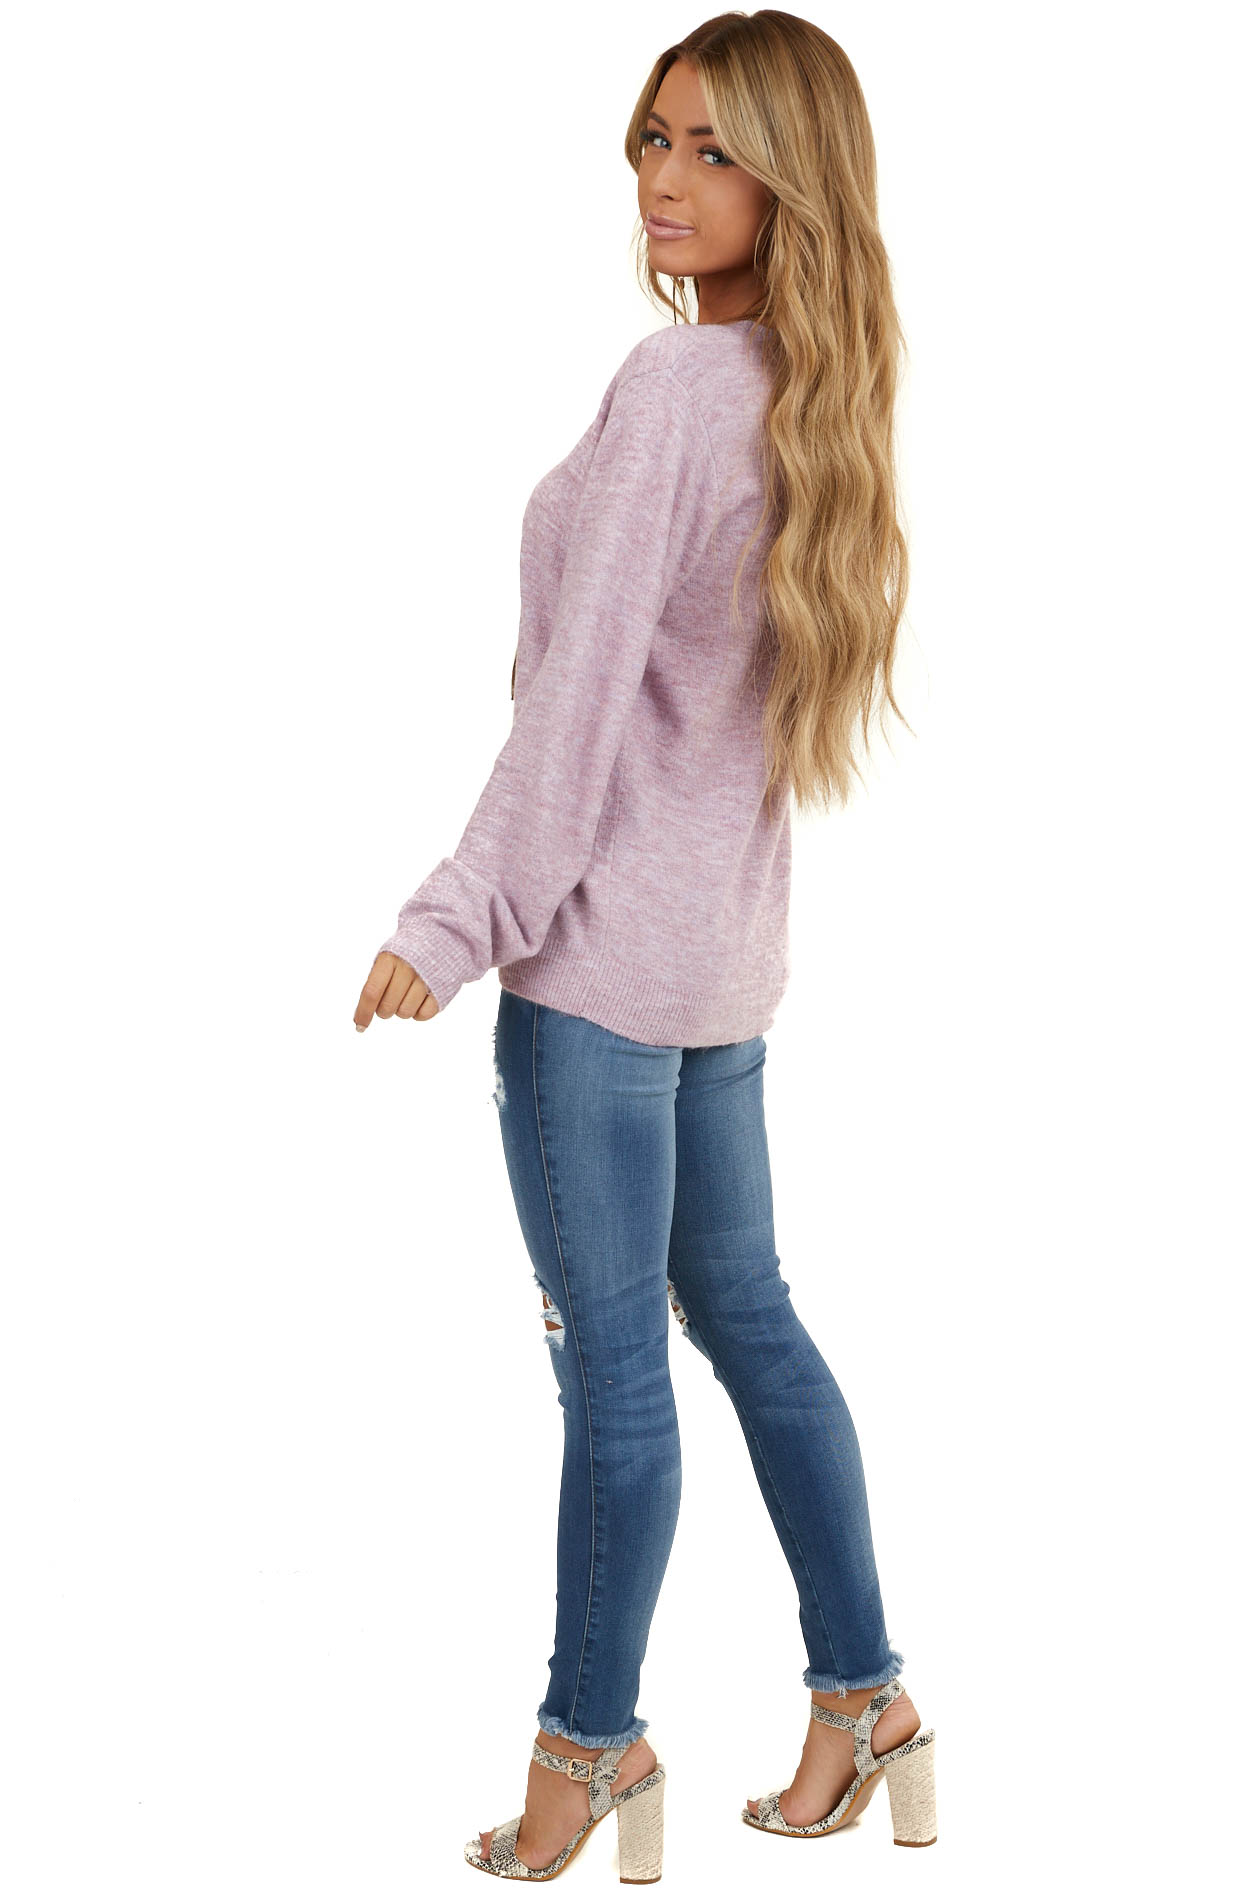 Heathered Lilac Long Sleeve Knit Sweater with Ribbing Detail